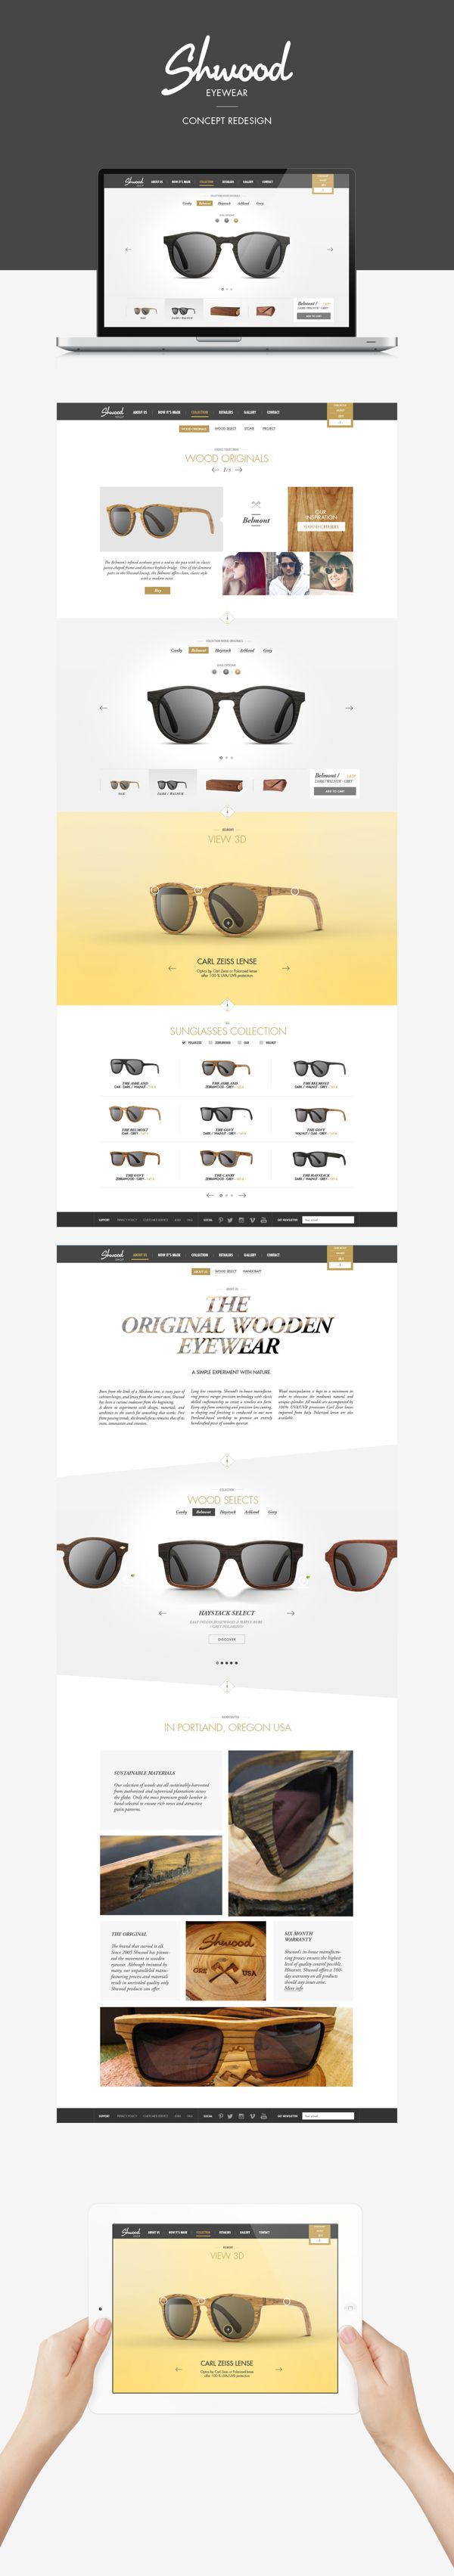 Shwood sunglasses - eshop Concept Redesign on Web Design Served